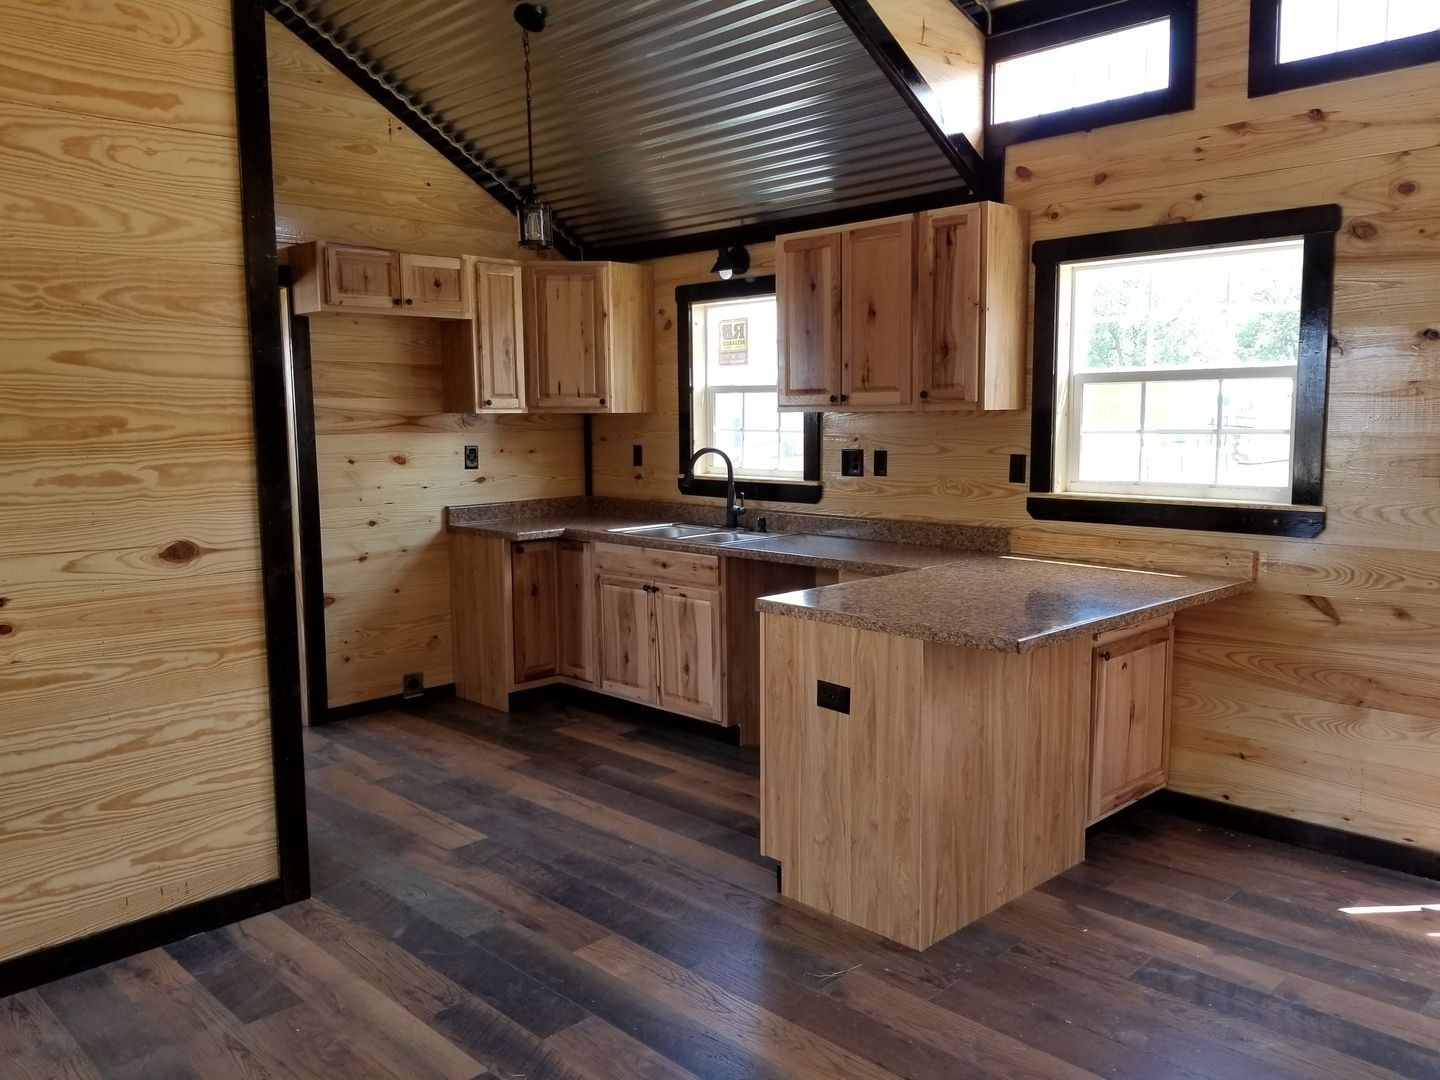 Storage Sheds Barns Cabin Shells Portable Buildings Tiny Homes Wolfvalley Buildings Llc A Frame House Plans Portable House Storage Shed House Tiny Homes